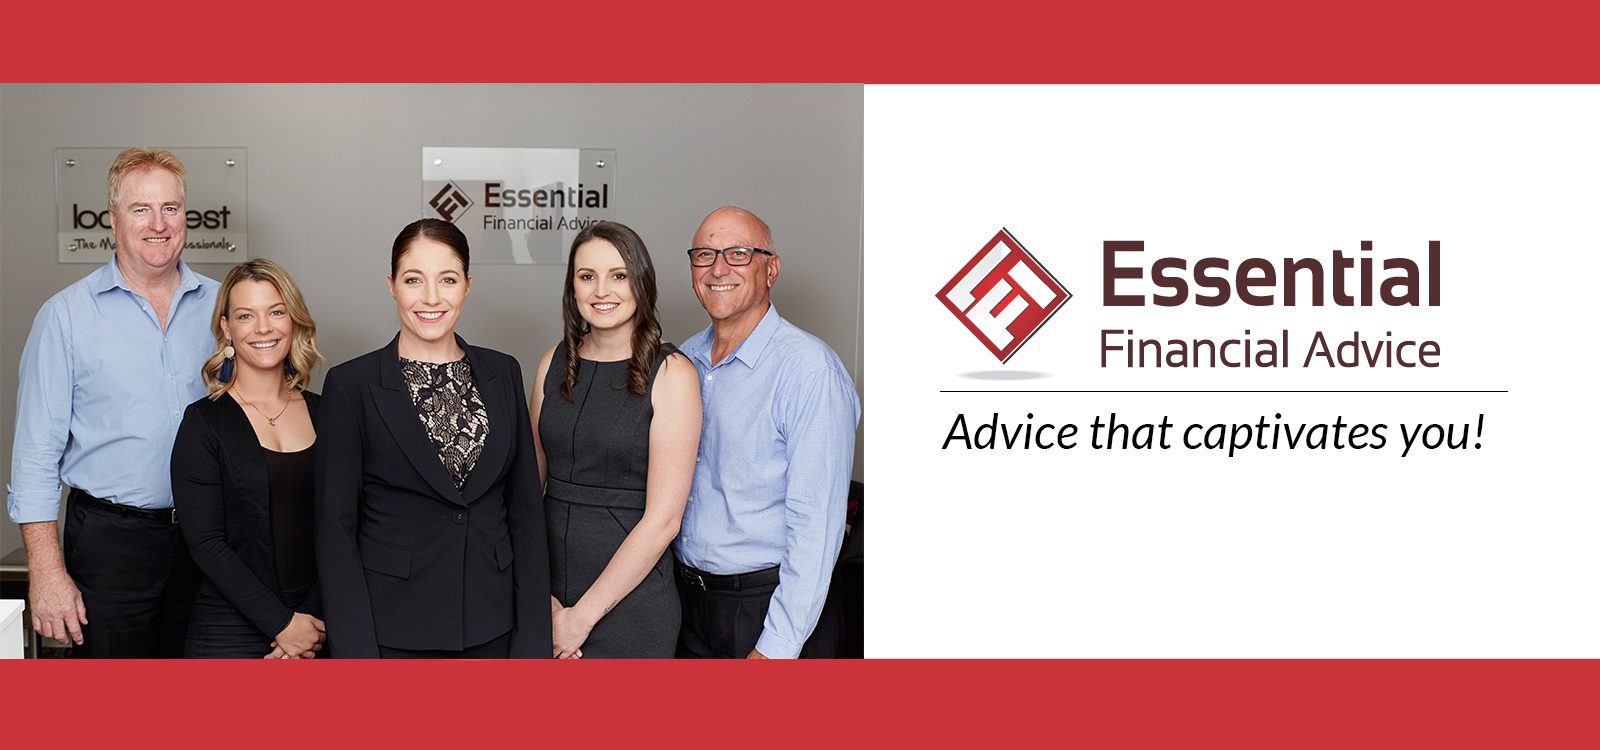 Essential Financial Advice